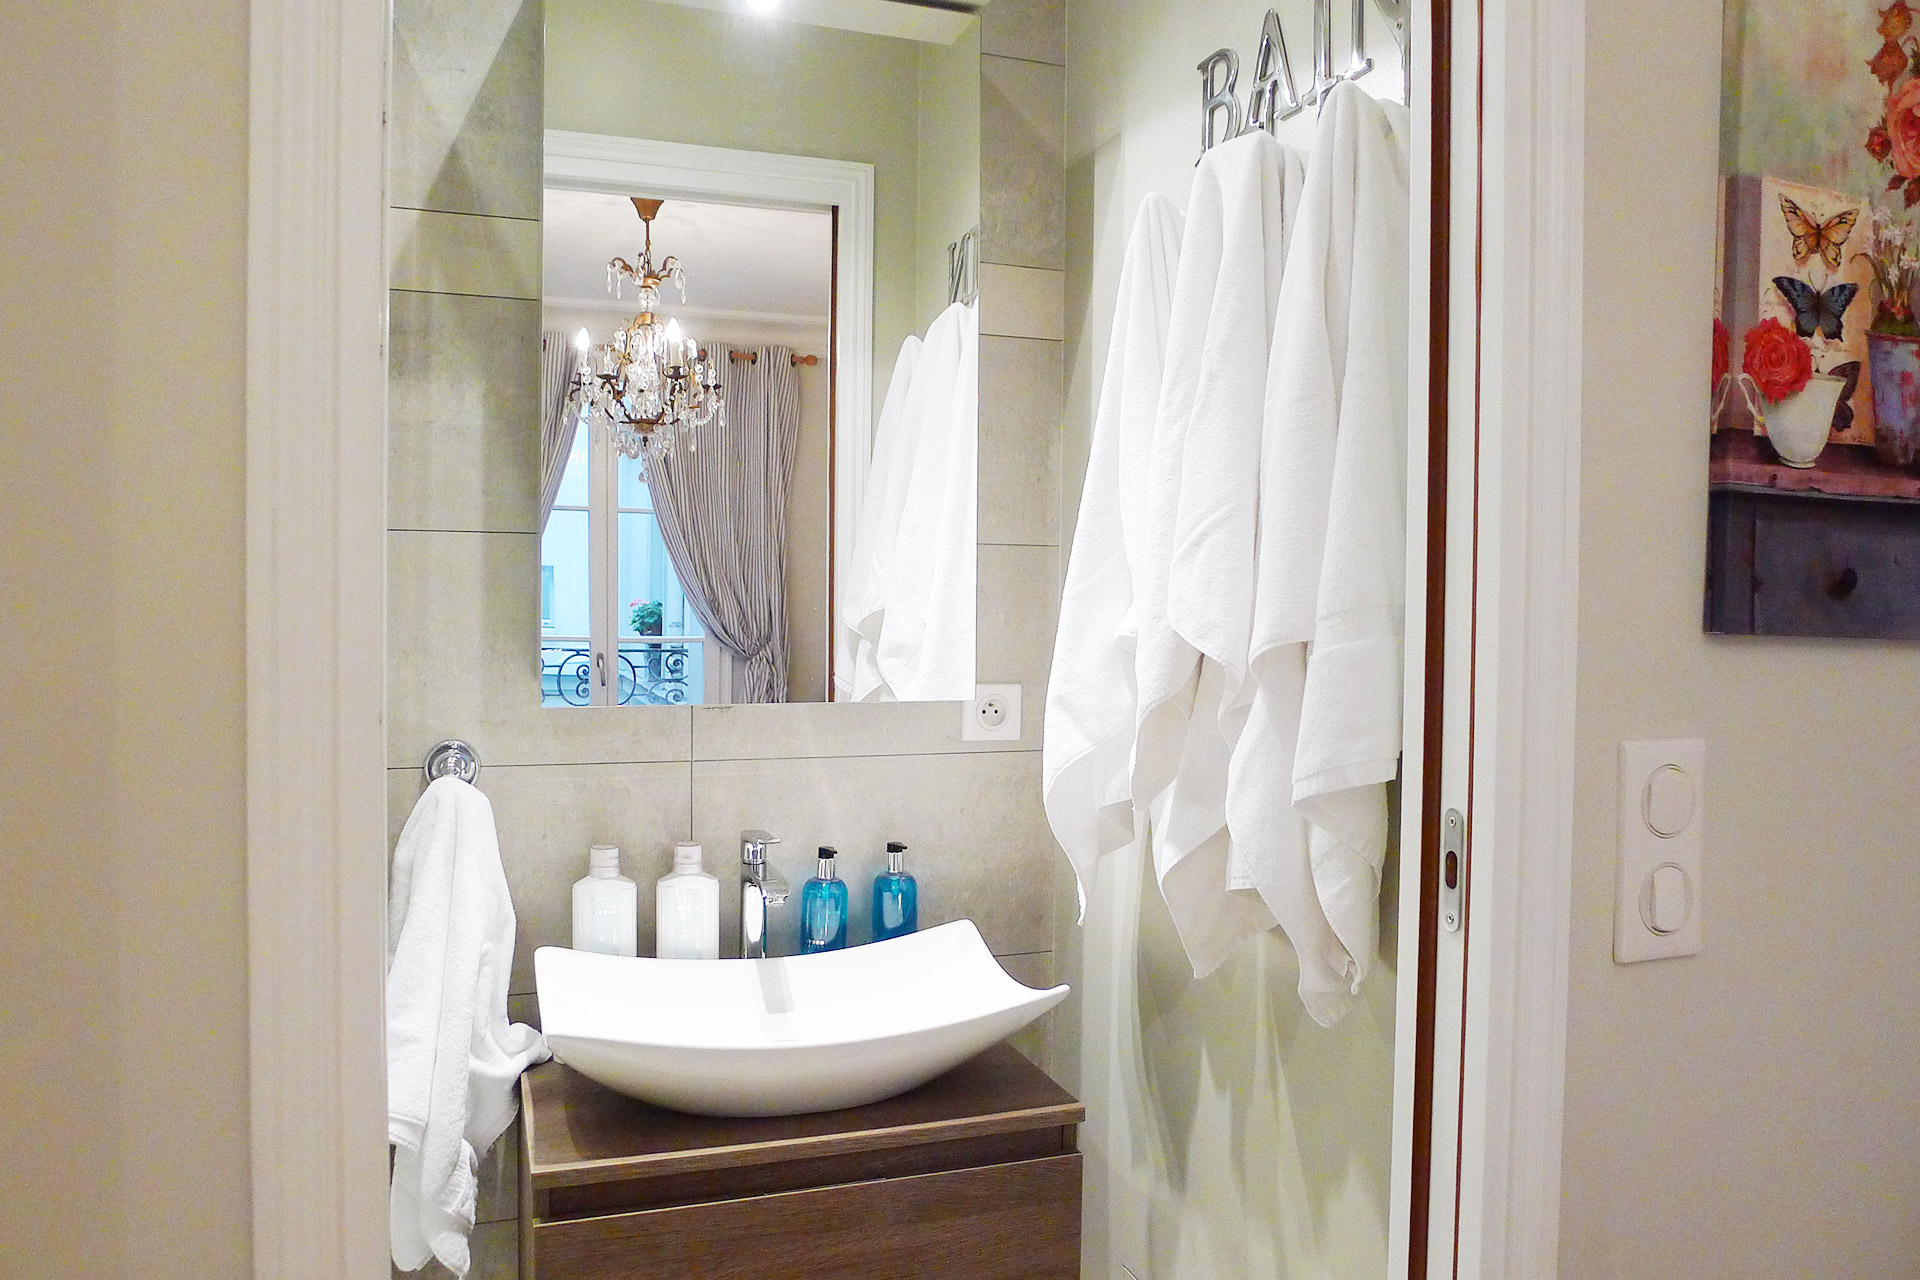 Private second en suite bathroom of the Beaujolais vacation rental offered by Paris Perfect